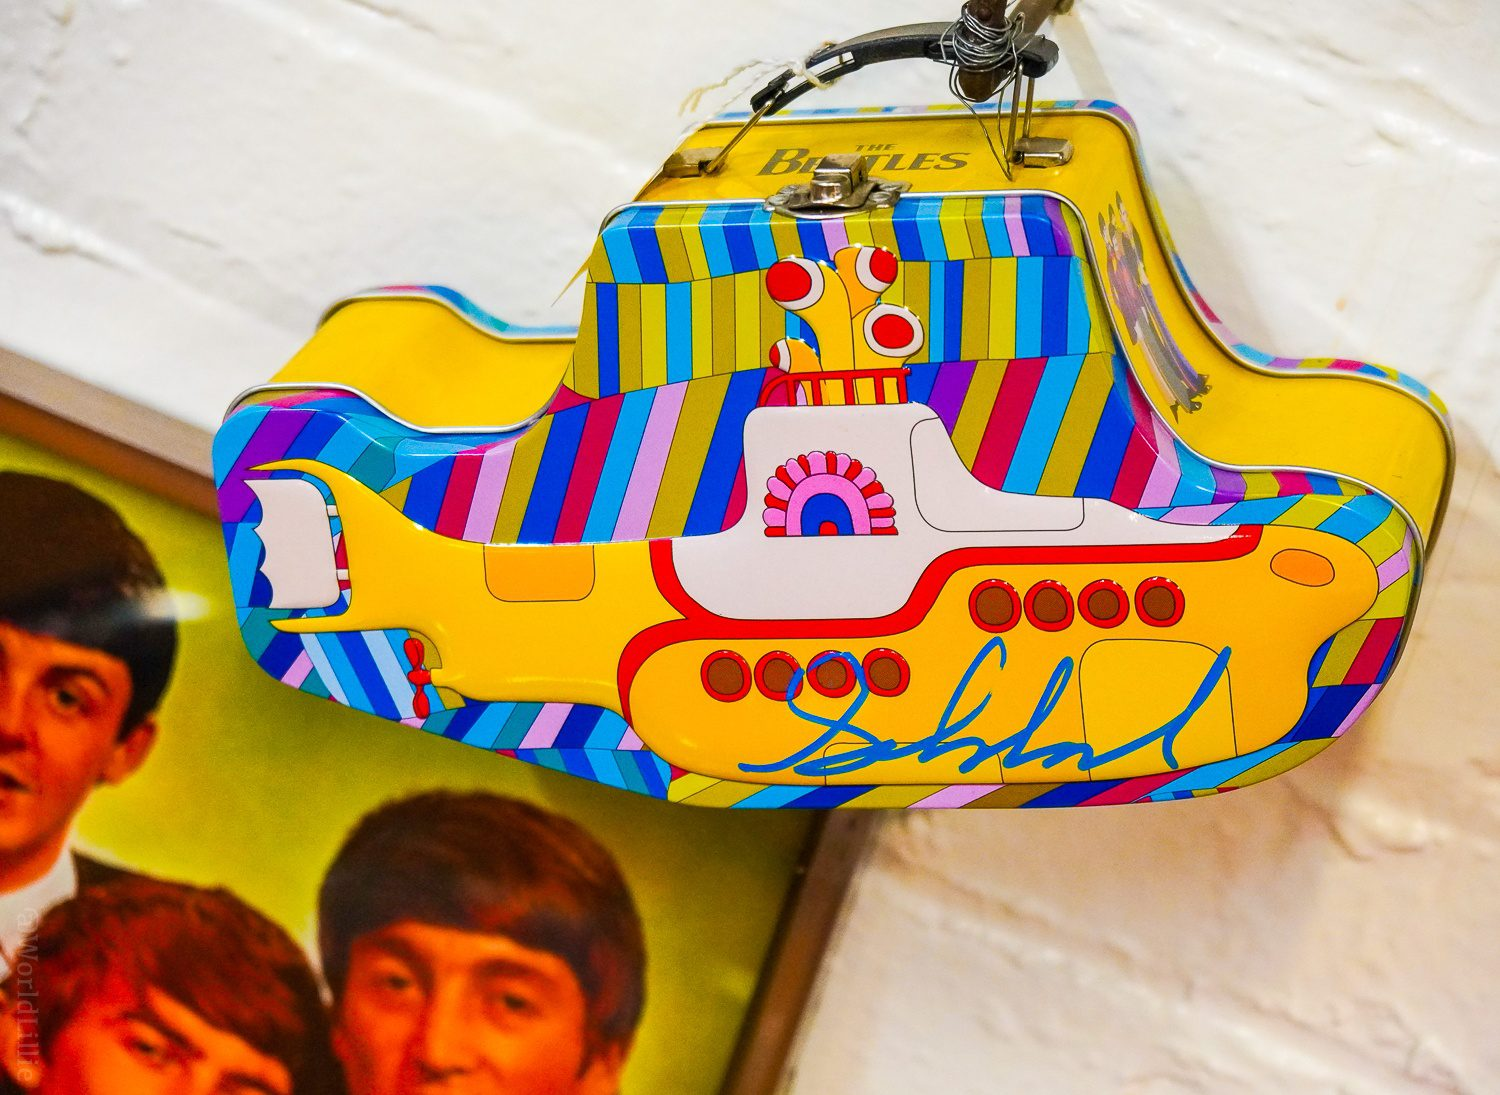 Rare Yellow Submarine lunch box for Beatles fans.